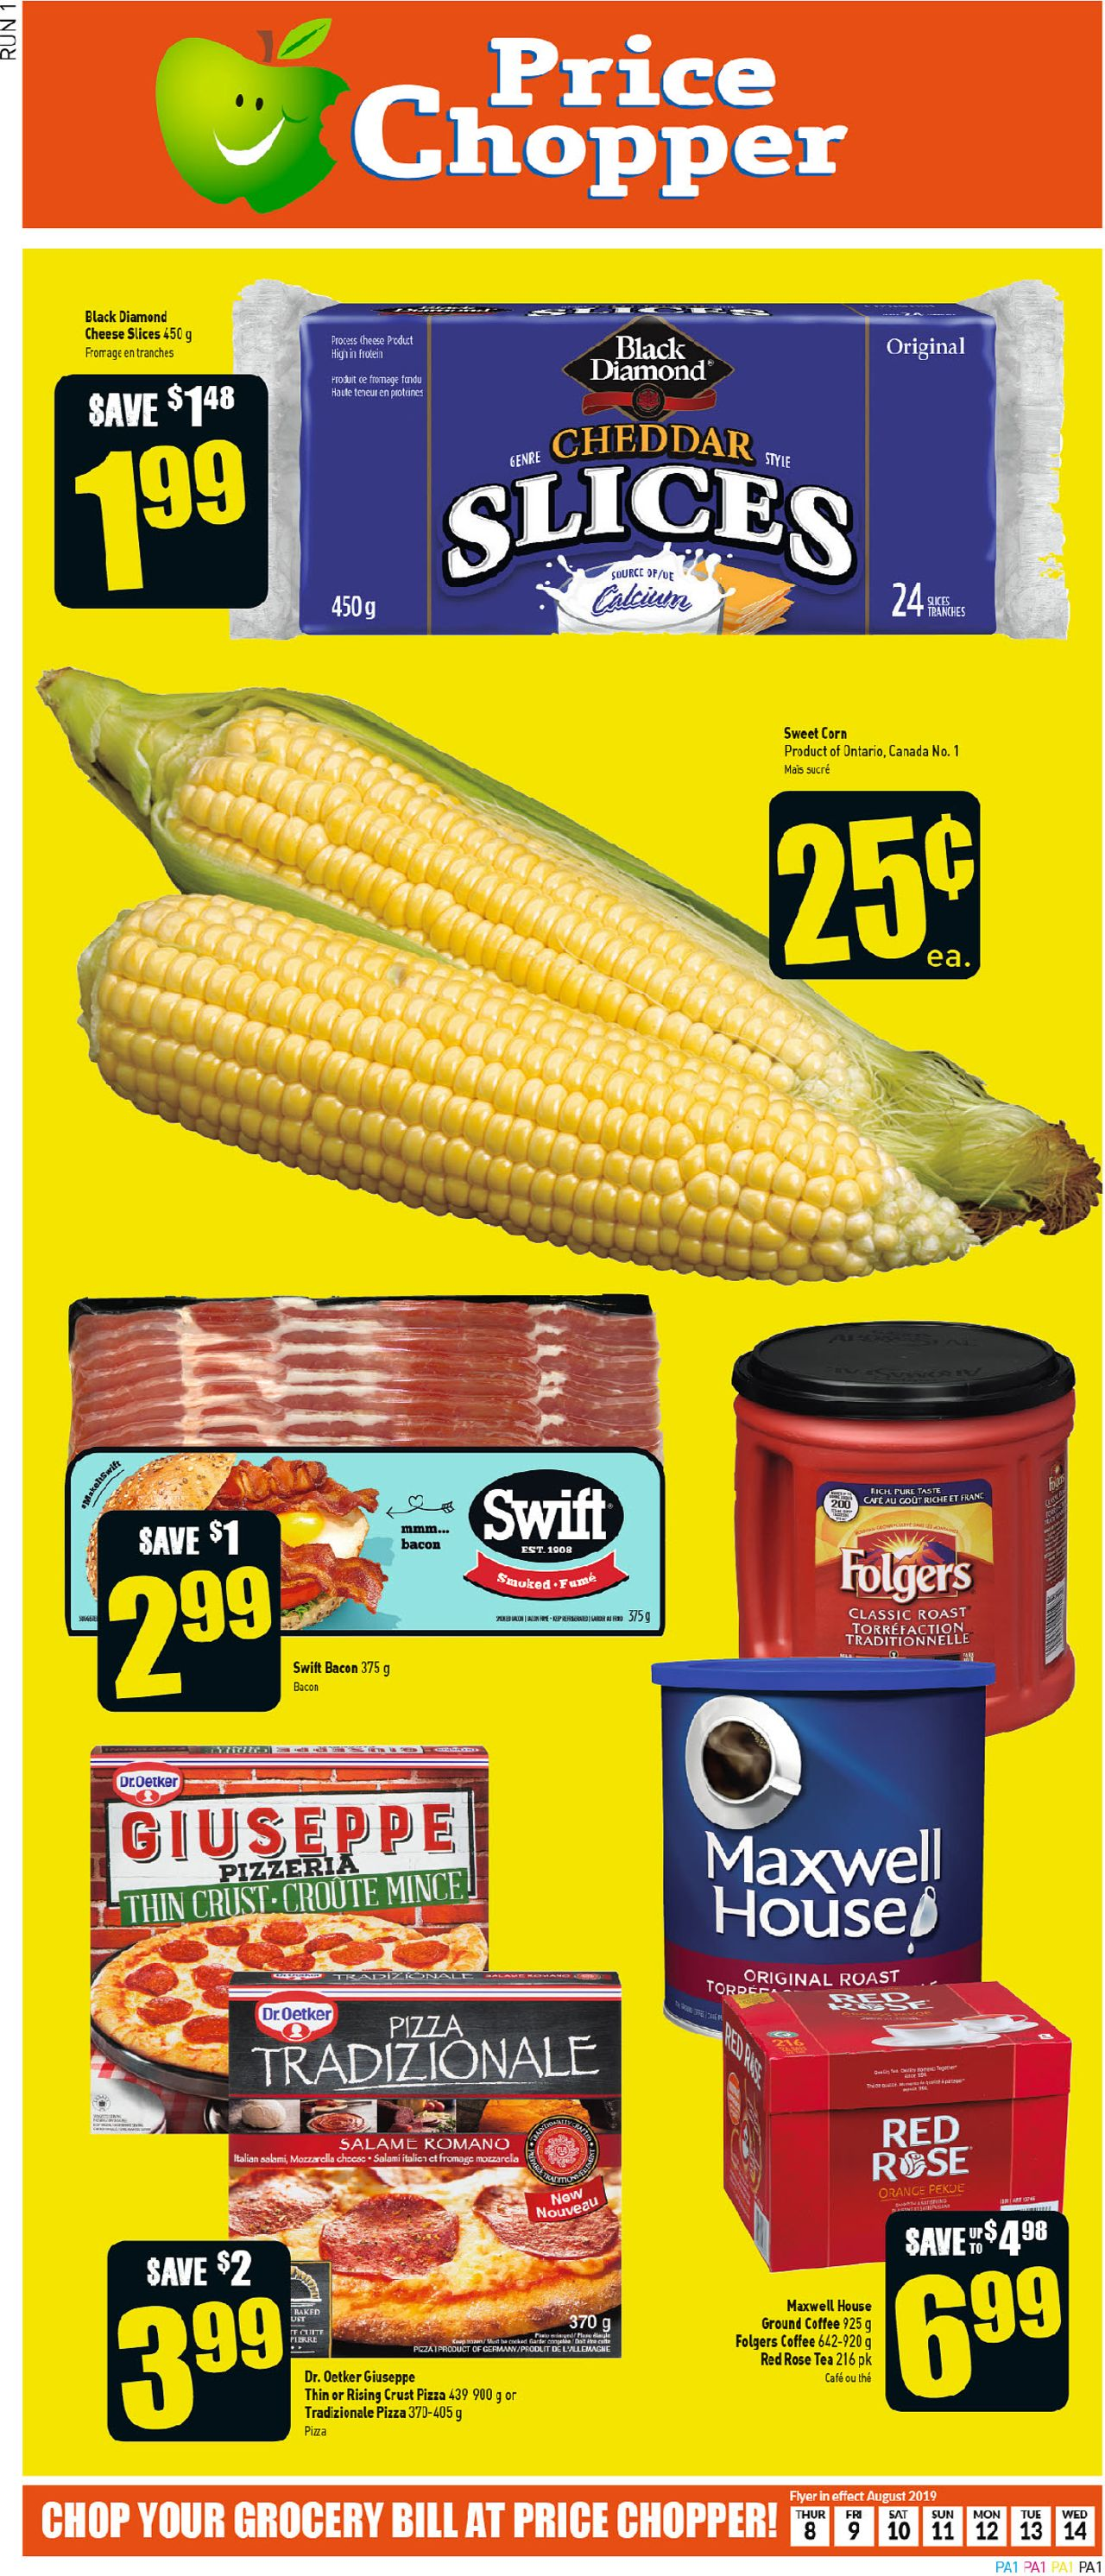 Price Chopper flyer valid from Aug. 08, 2019 page number 1